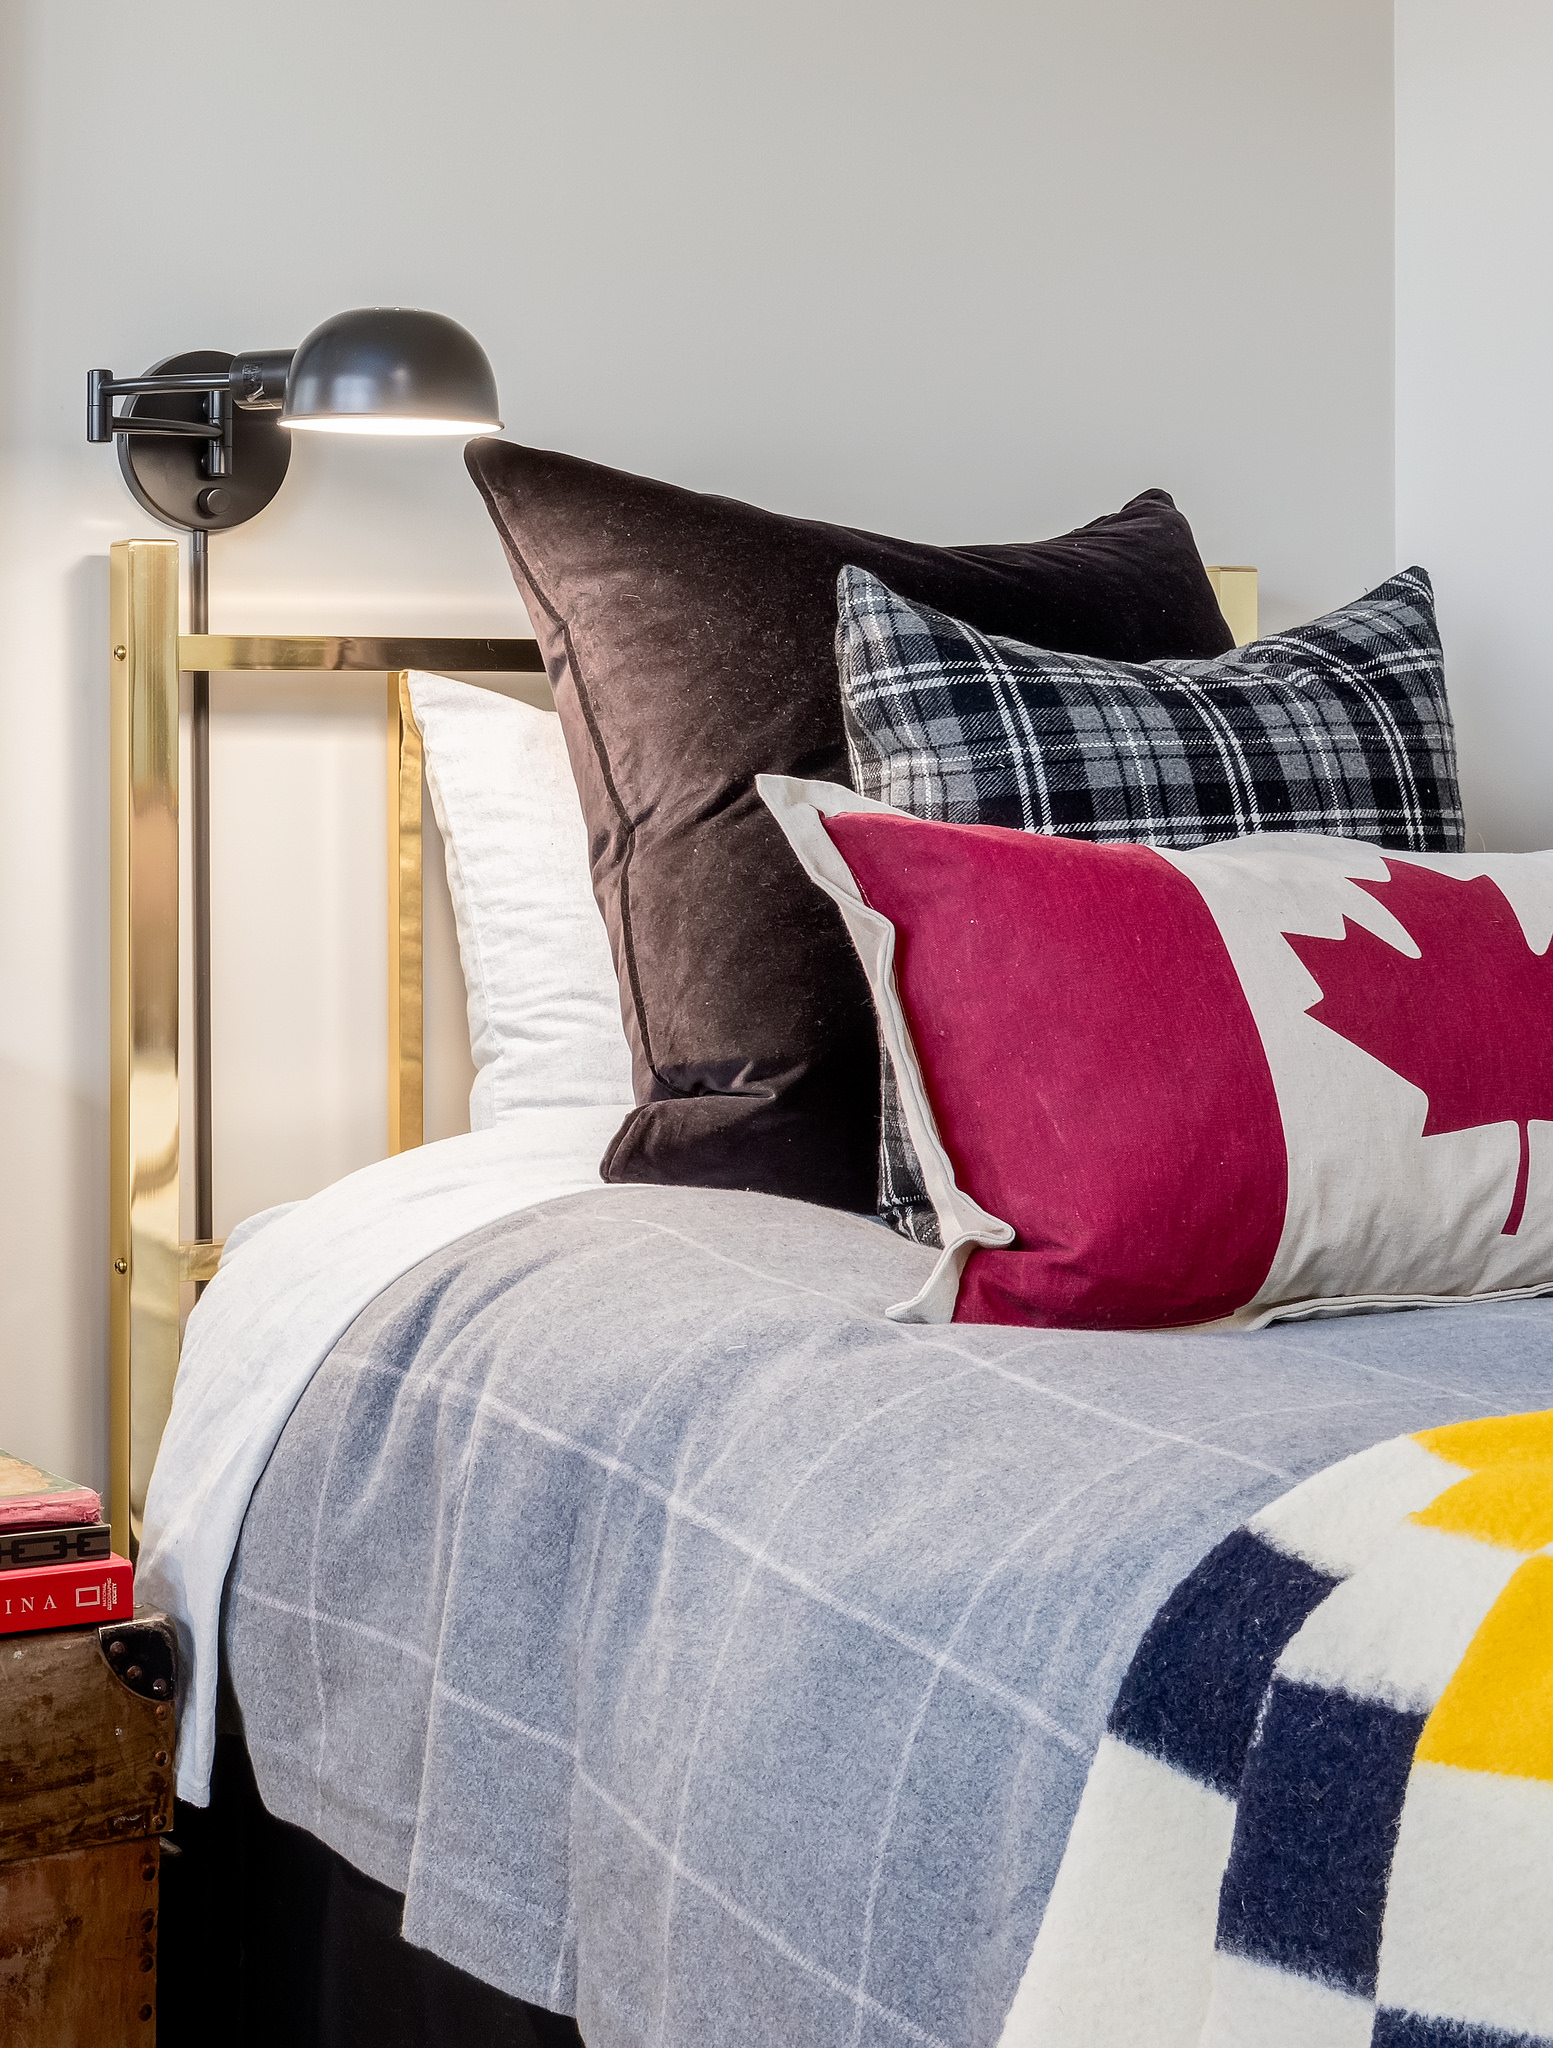 twin guest room has a nod to Canada with Hudson Bay blanket, Canada flag decorator cushion and a few plaids mixed in.